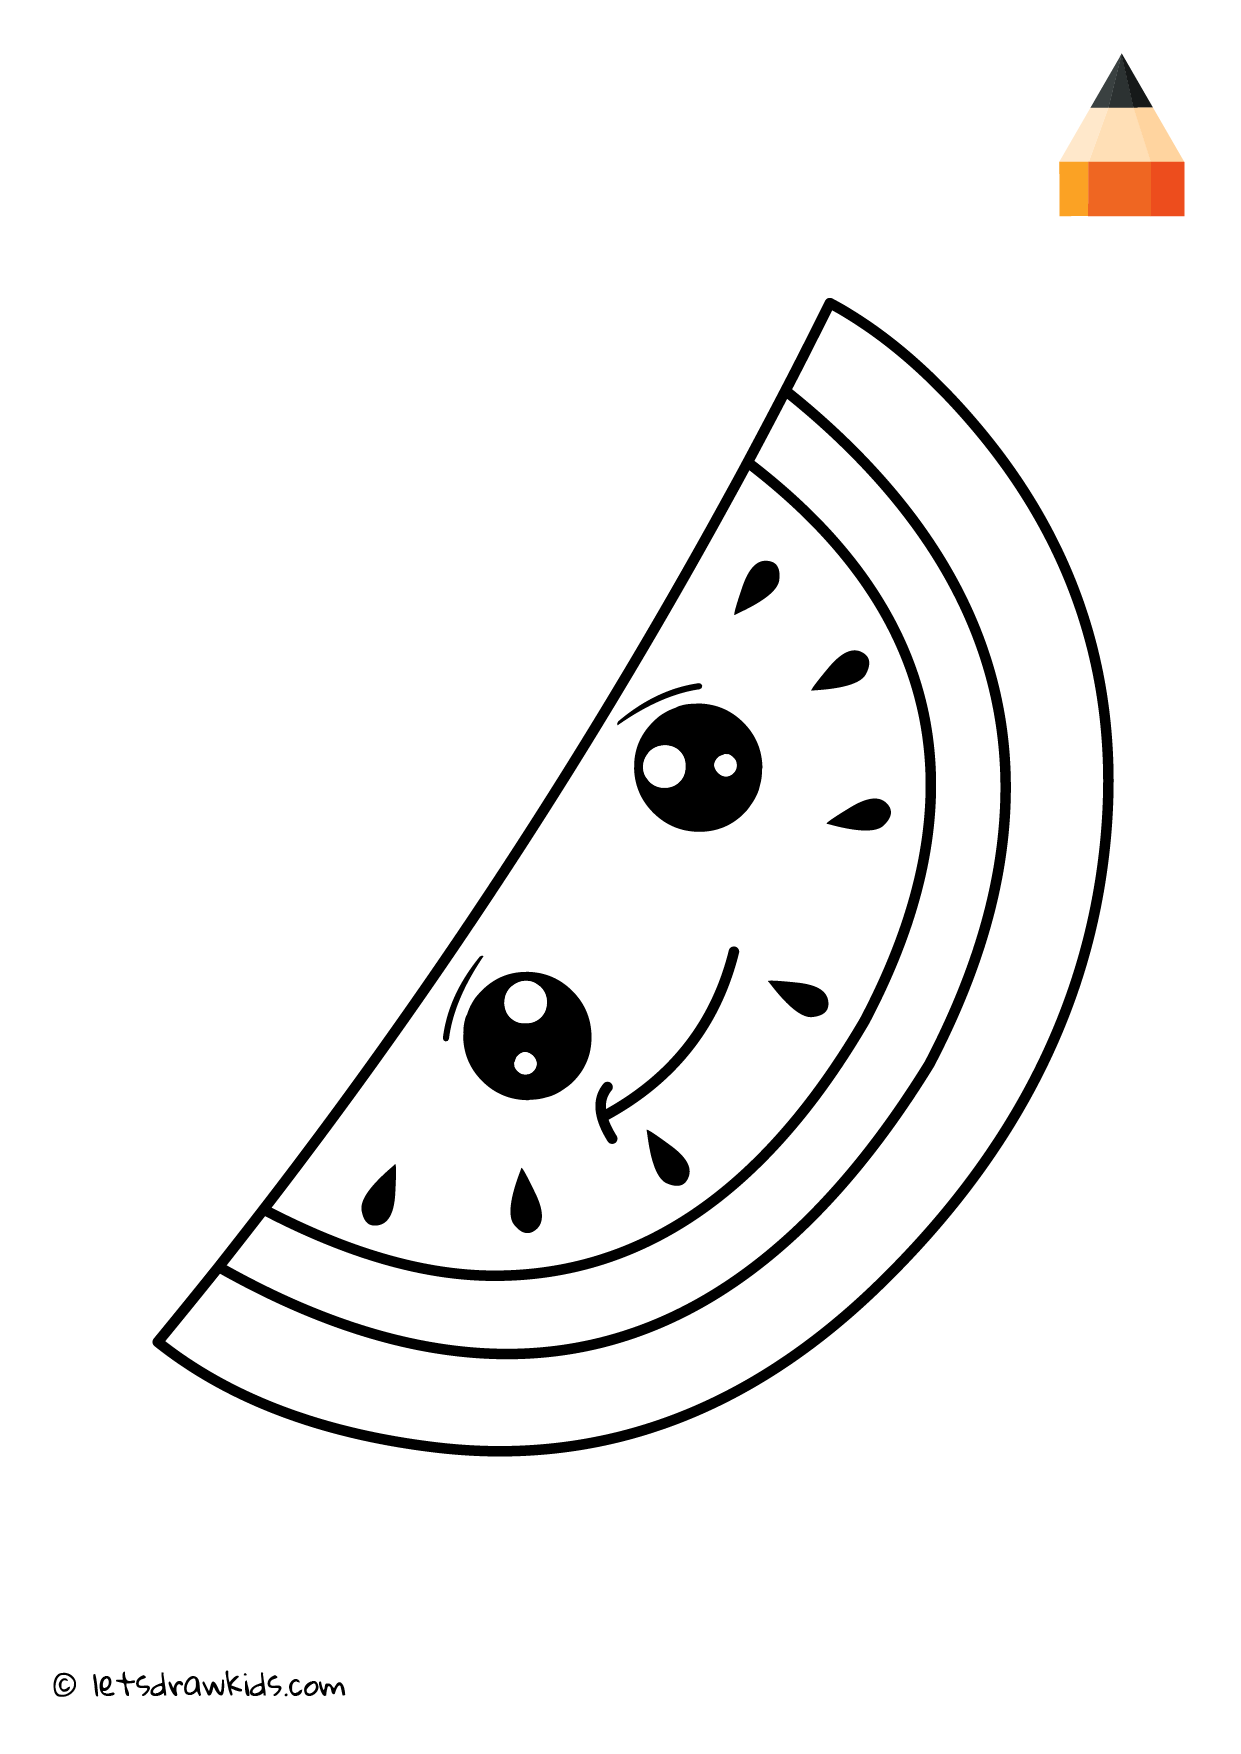 watermelon coloring images coloring page cute watermelon coloring watermelon images